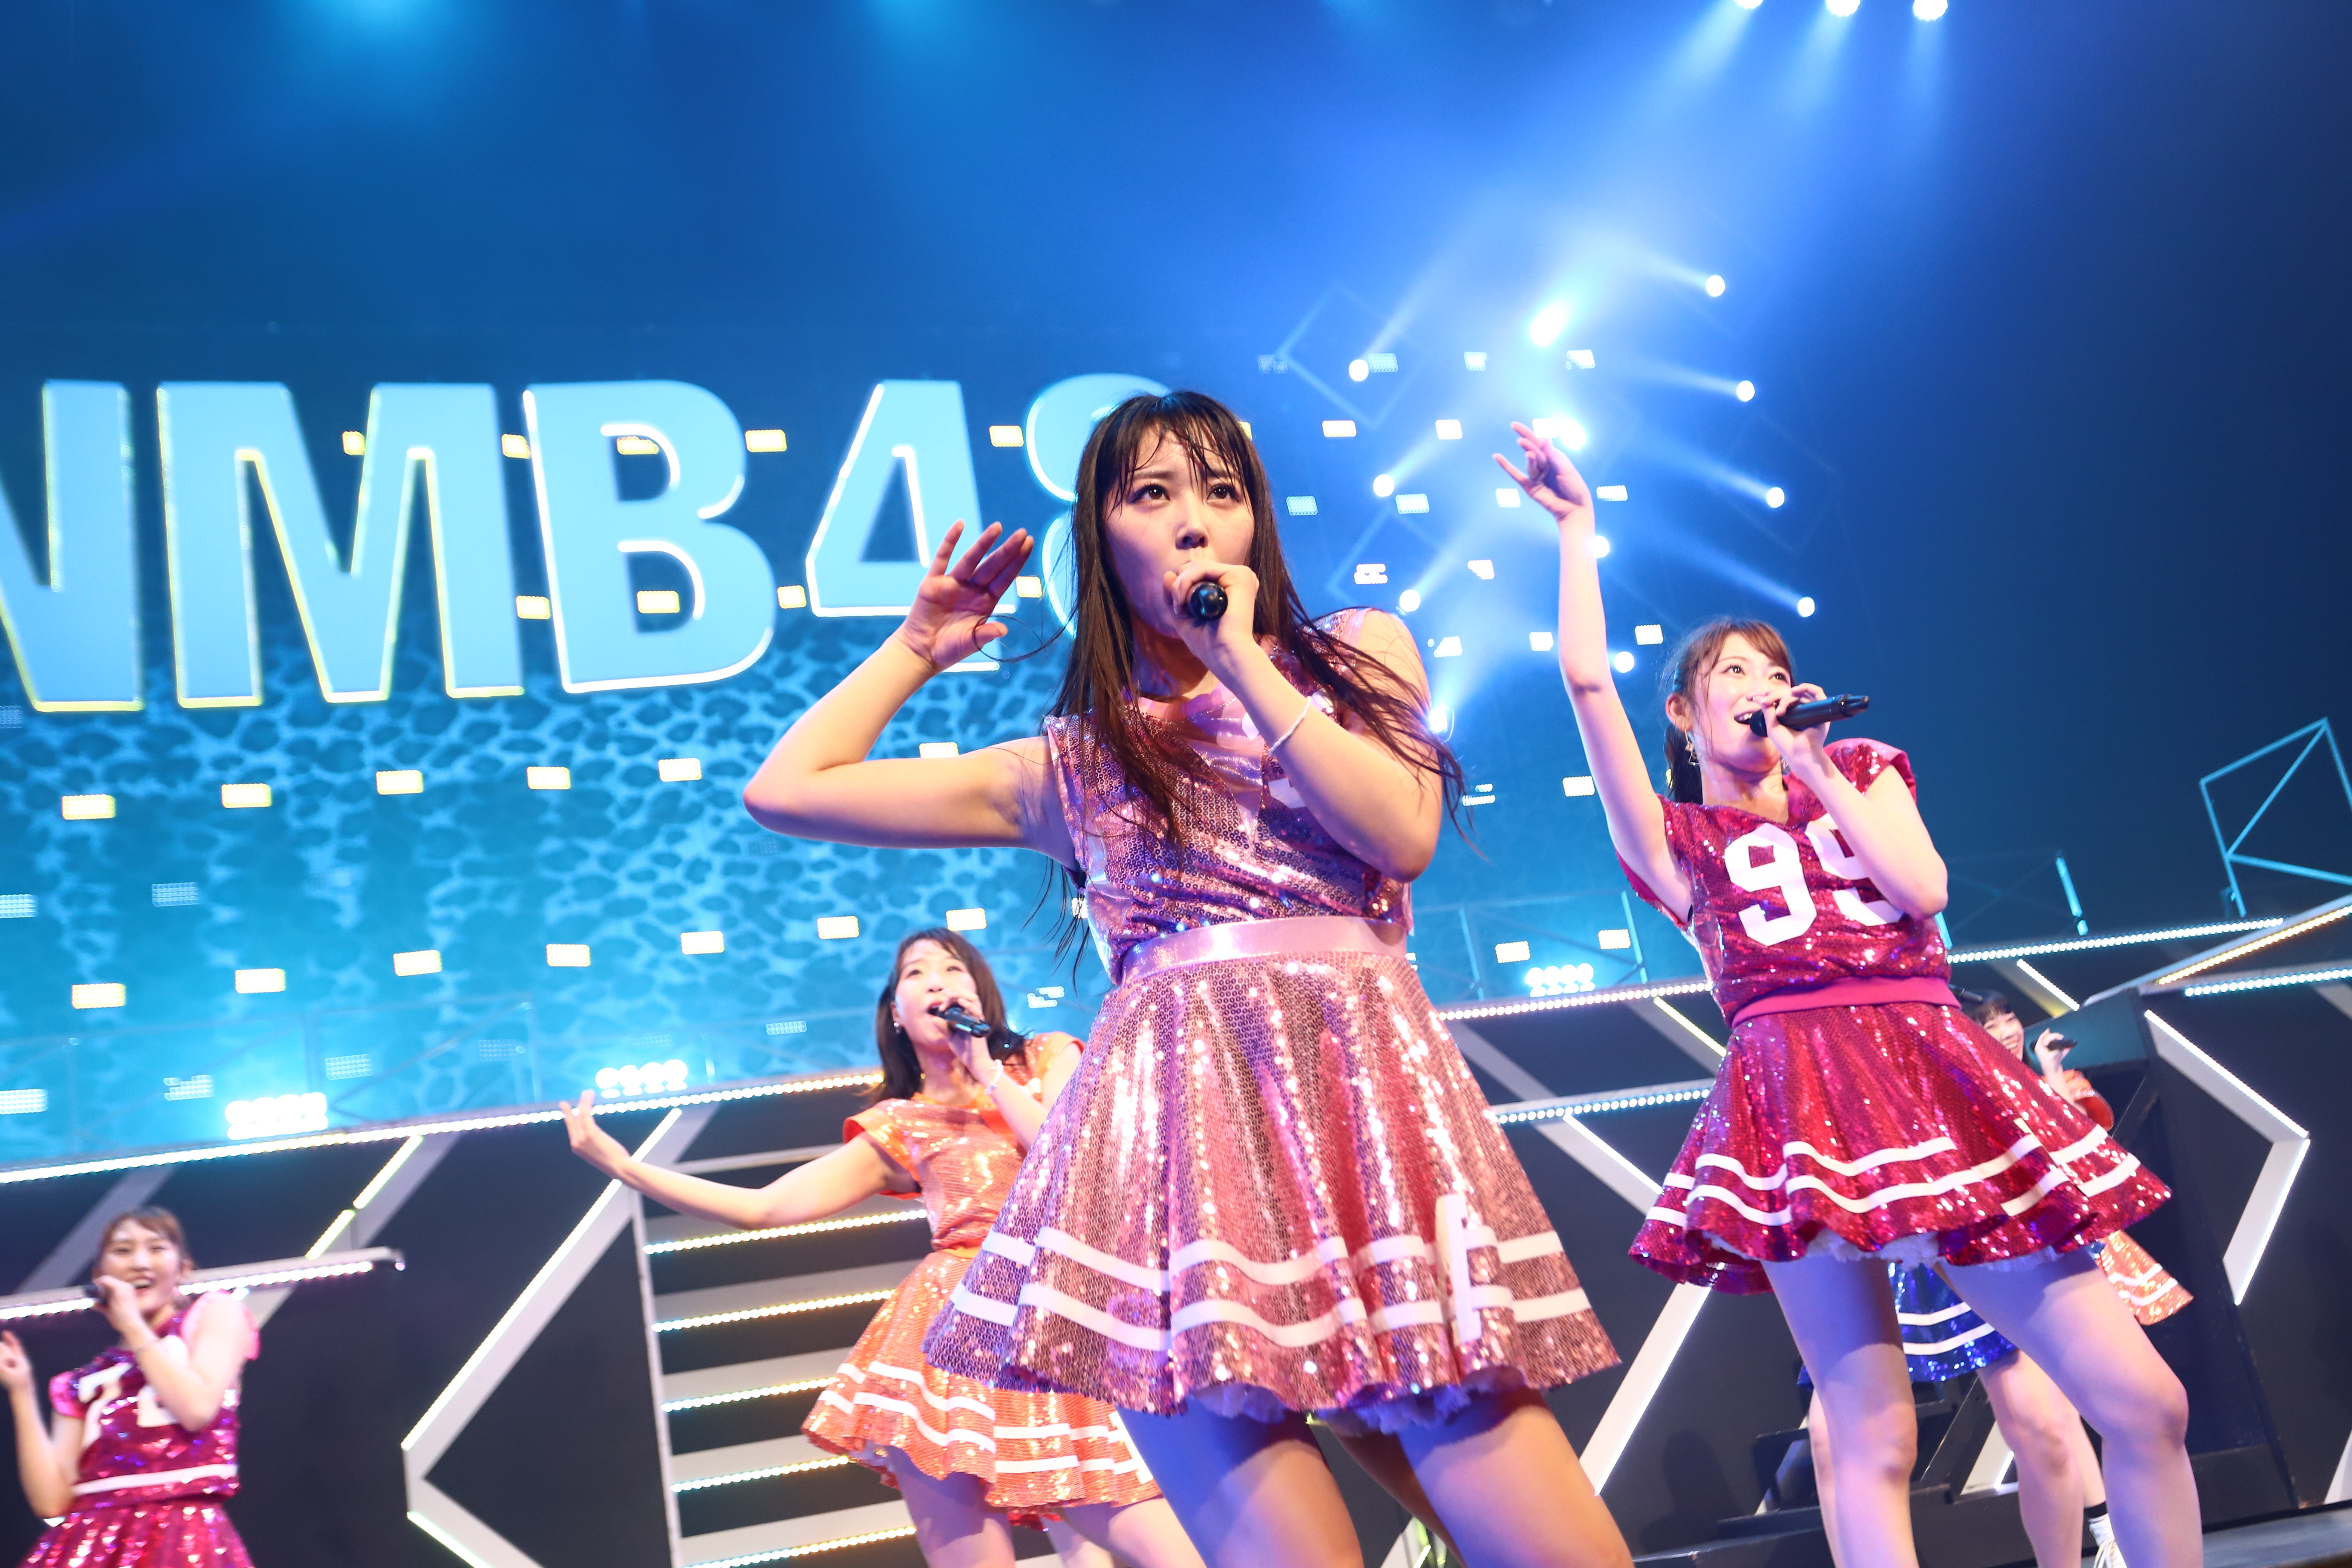 NMB48 LIVE TOUR 2018 名古屋 チームM公演-177